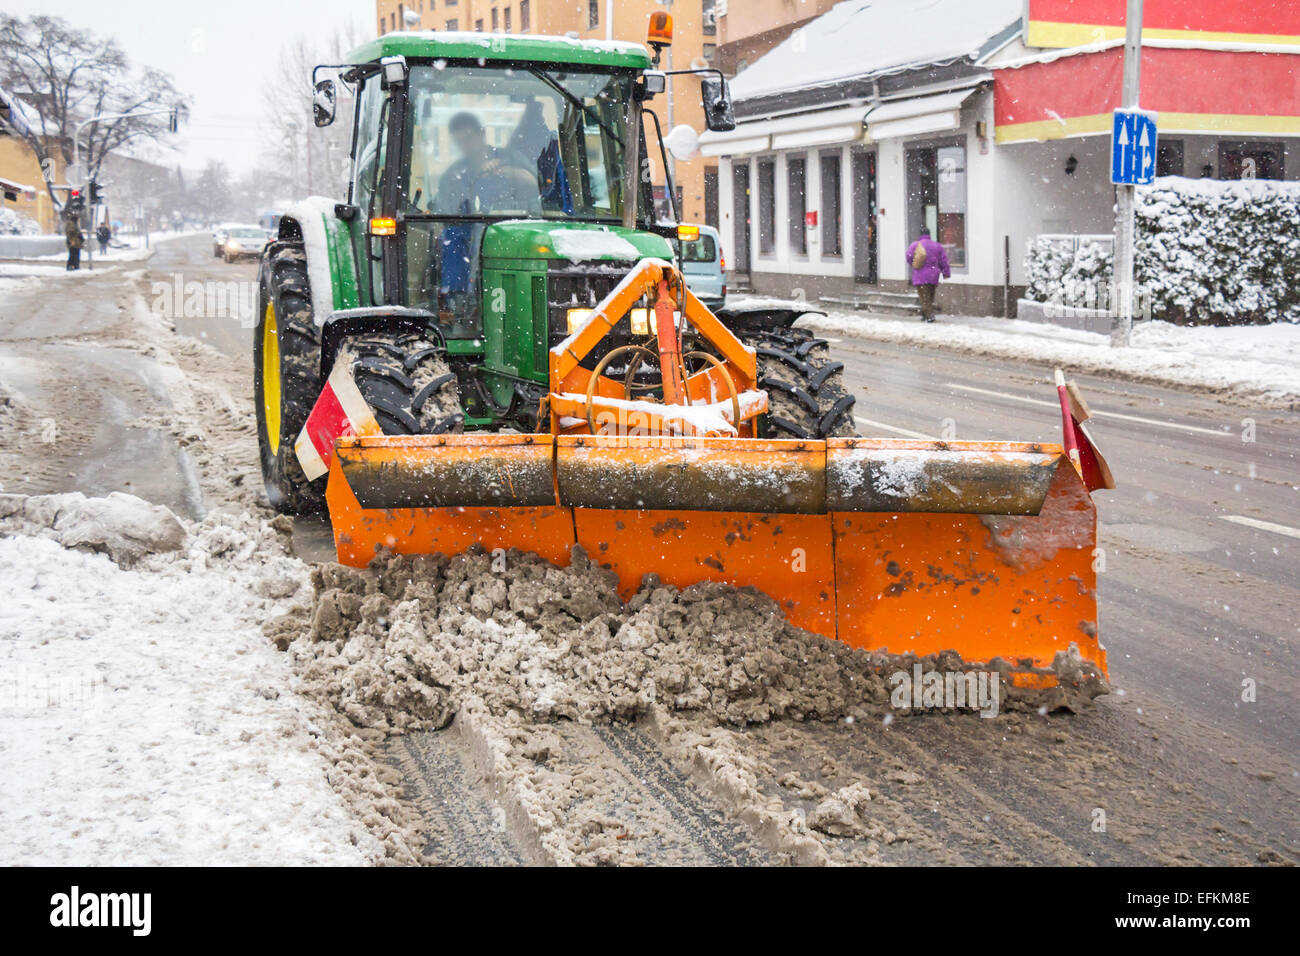 Snowplow tractor removing snow from city road - Stock Image